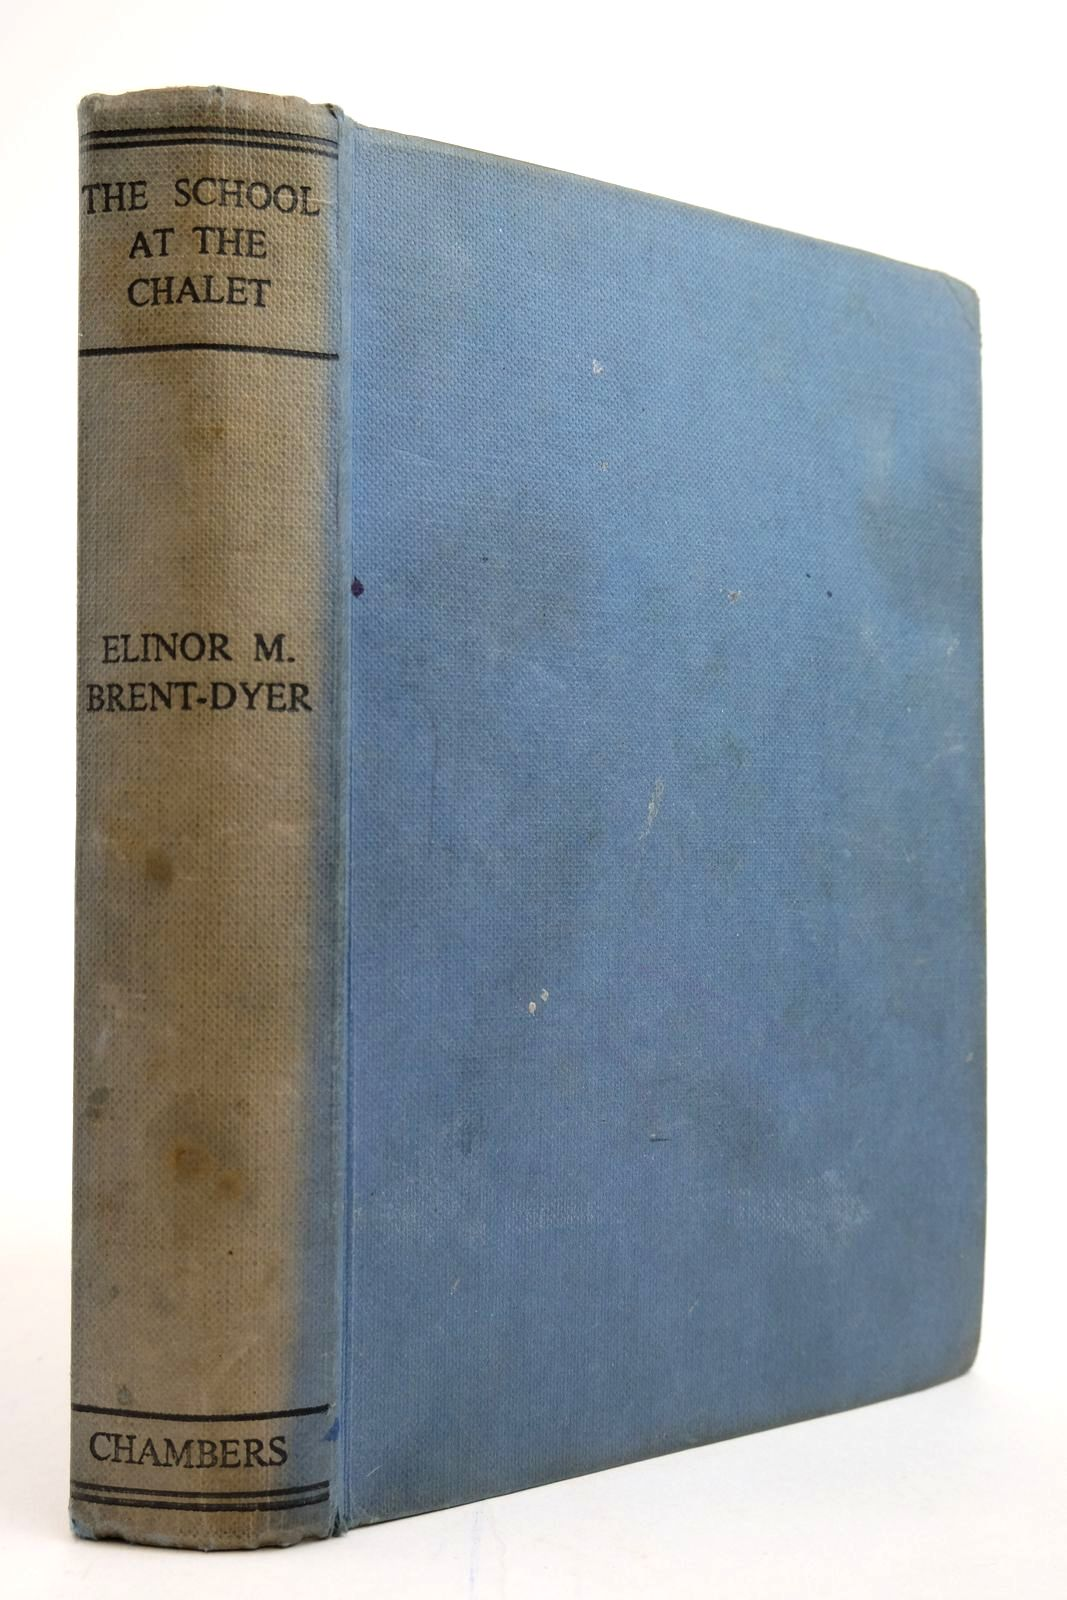 Photo of THE SCHOOL AT THE CHALET written by Brent-Dyer, Elinor M. published by W. & R. Chambers (STOCK CODE: 2135247)  for sale by Stella & Rose's Books